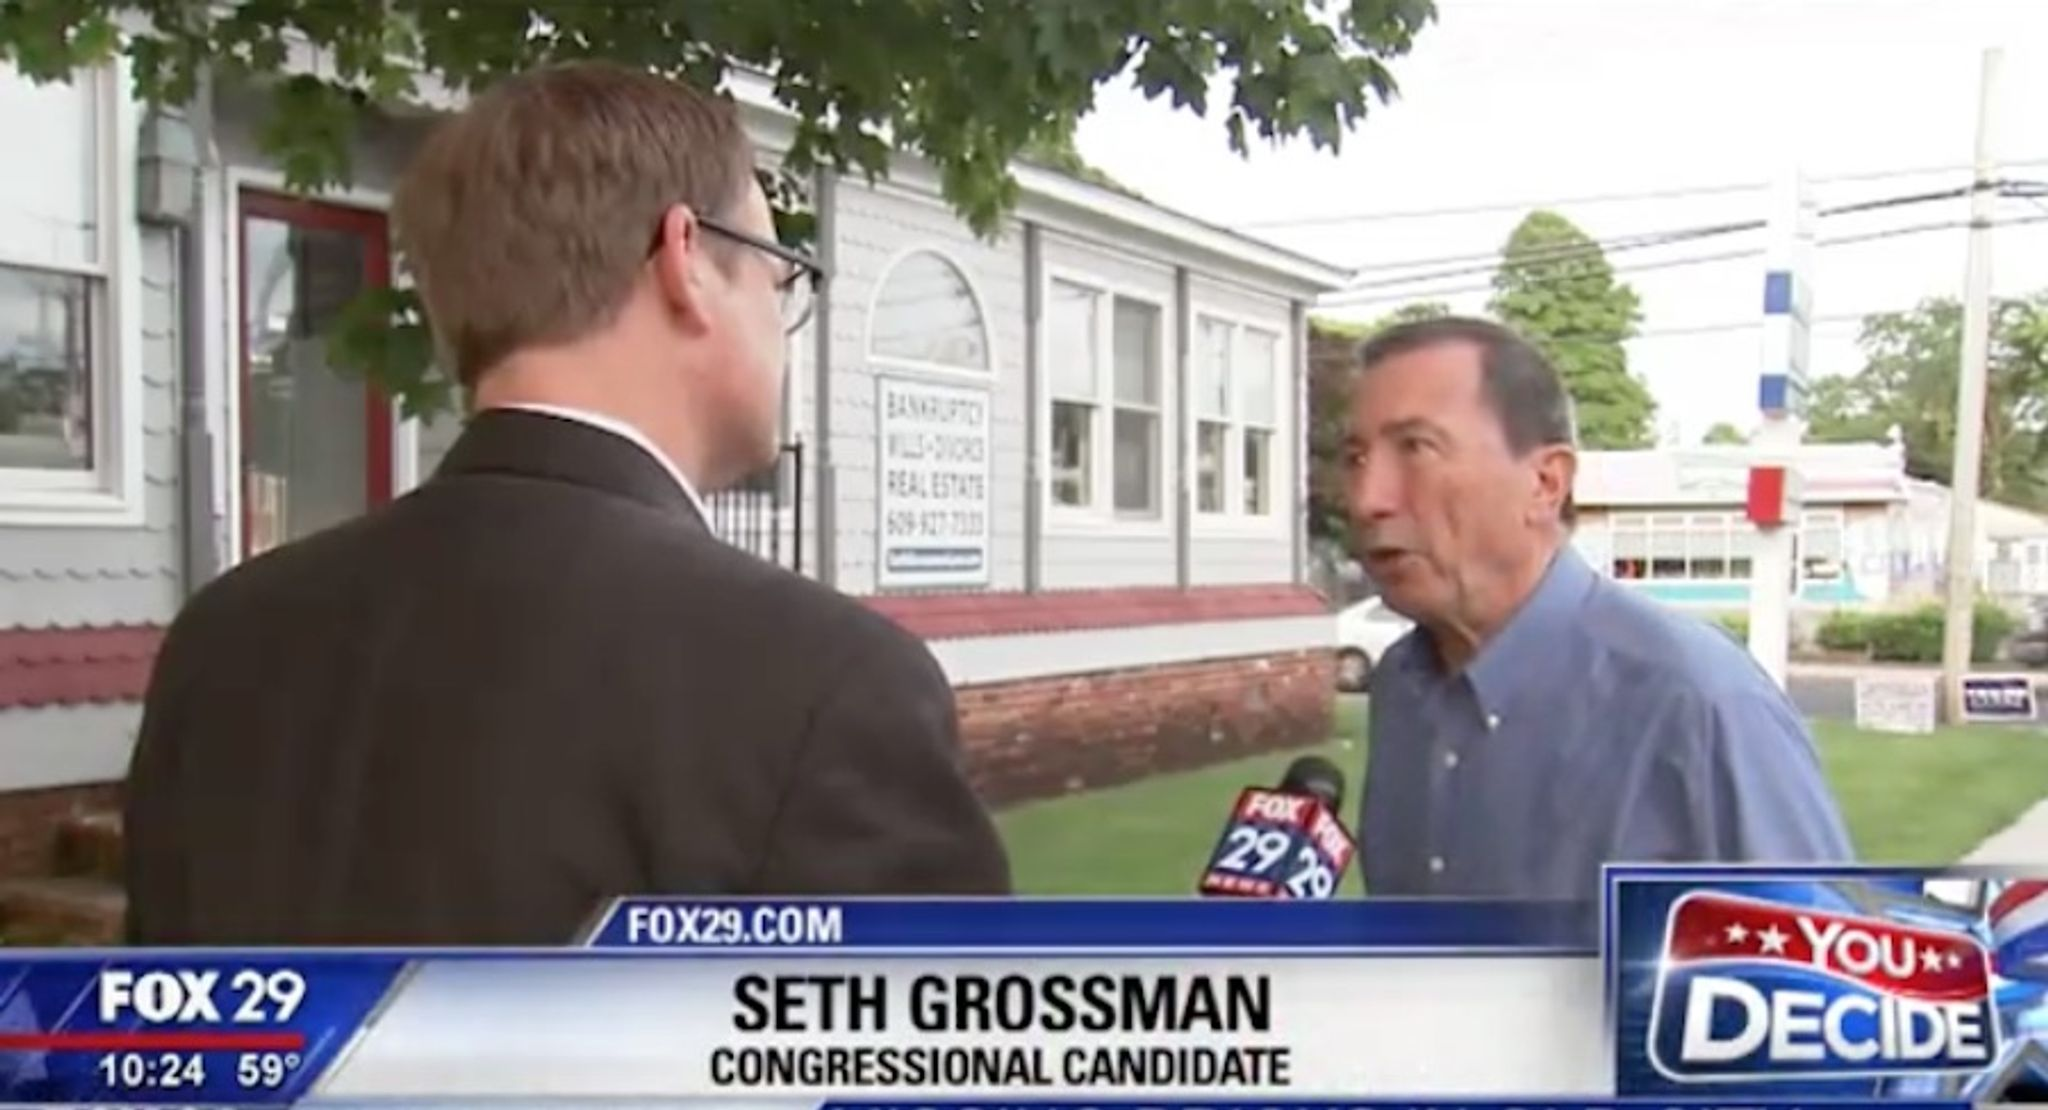 Seth Grossman, GOP House nominee, doubles down on diversity comments: 'Diversity is not a virtue' - Washington Times